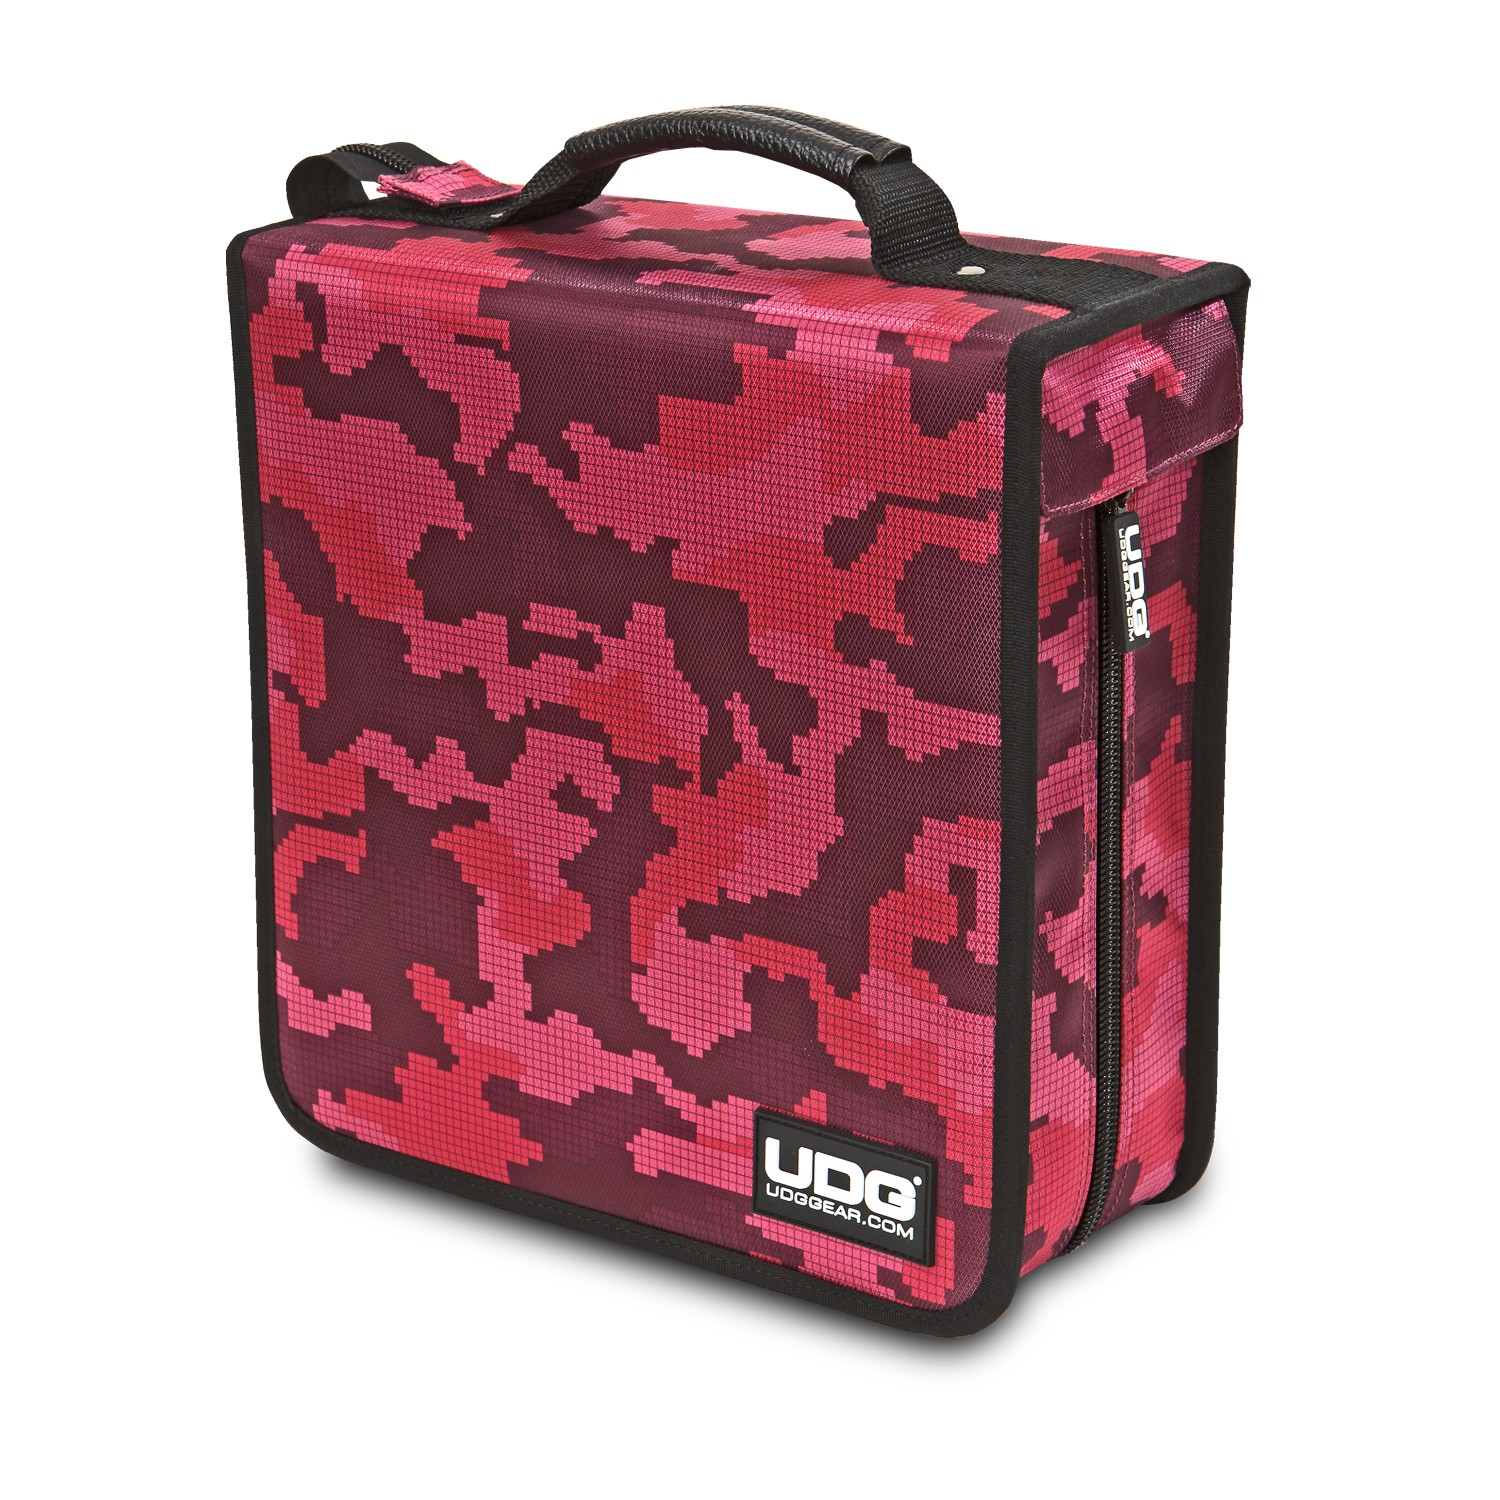 Udg Ultimate Cd Wallet 280 Digital Camo Pink Shop L